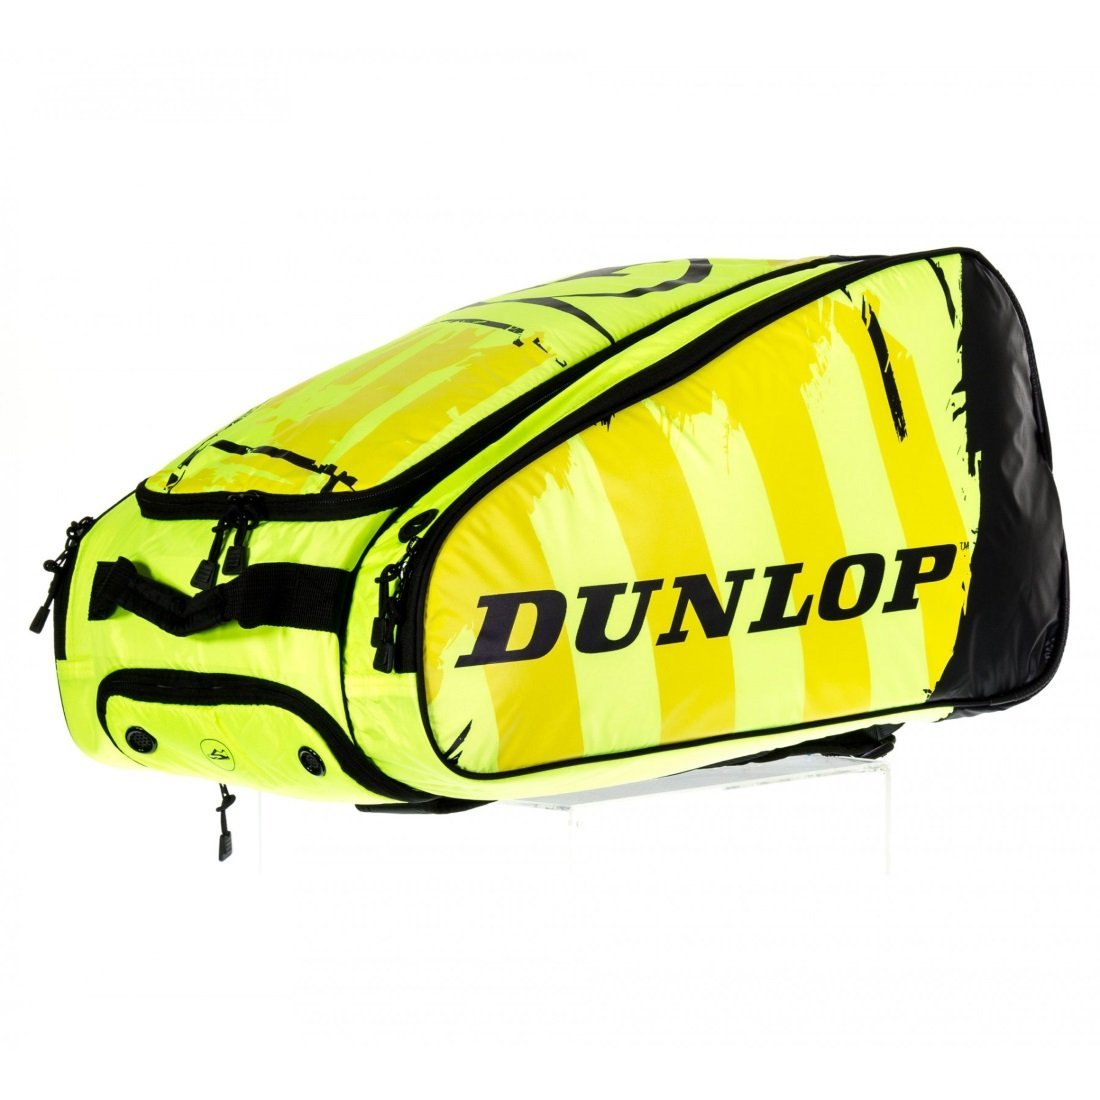 Amazon.com : DUNLOP Paletero Pro Padel Racket Bag : Sports ...